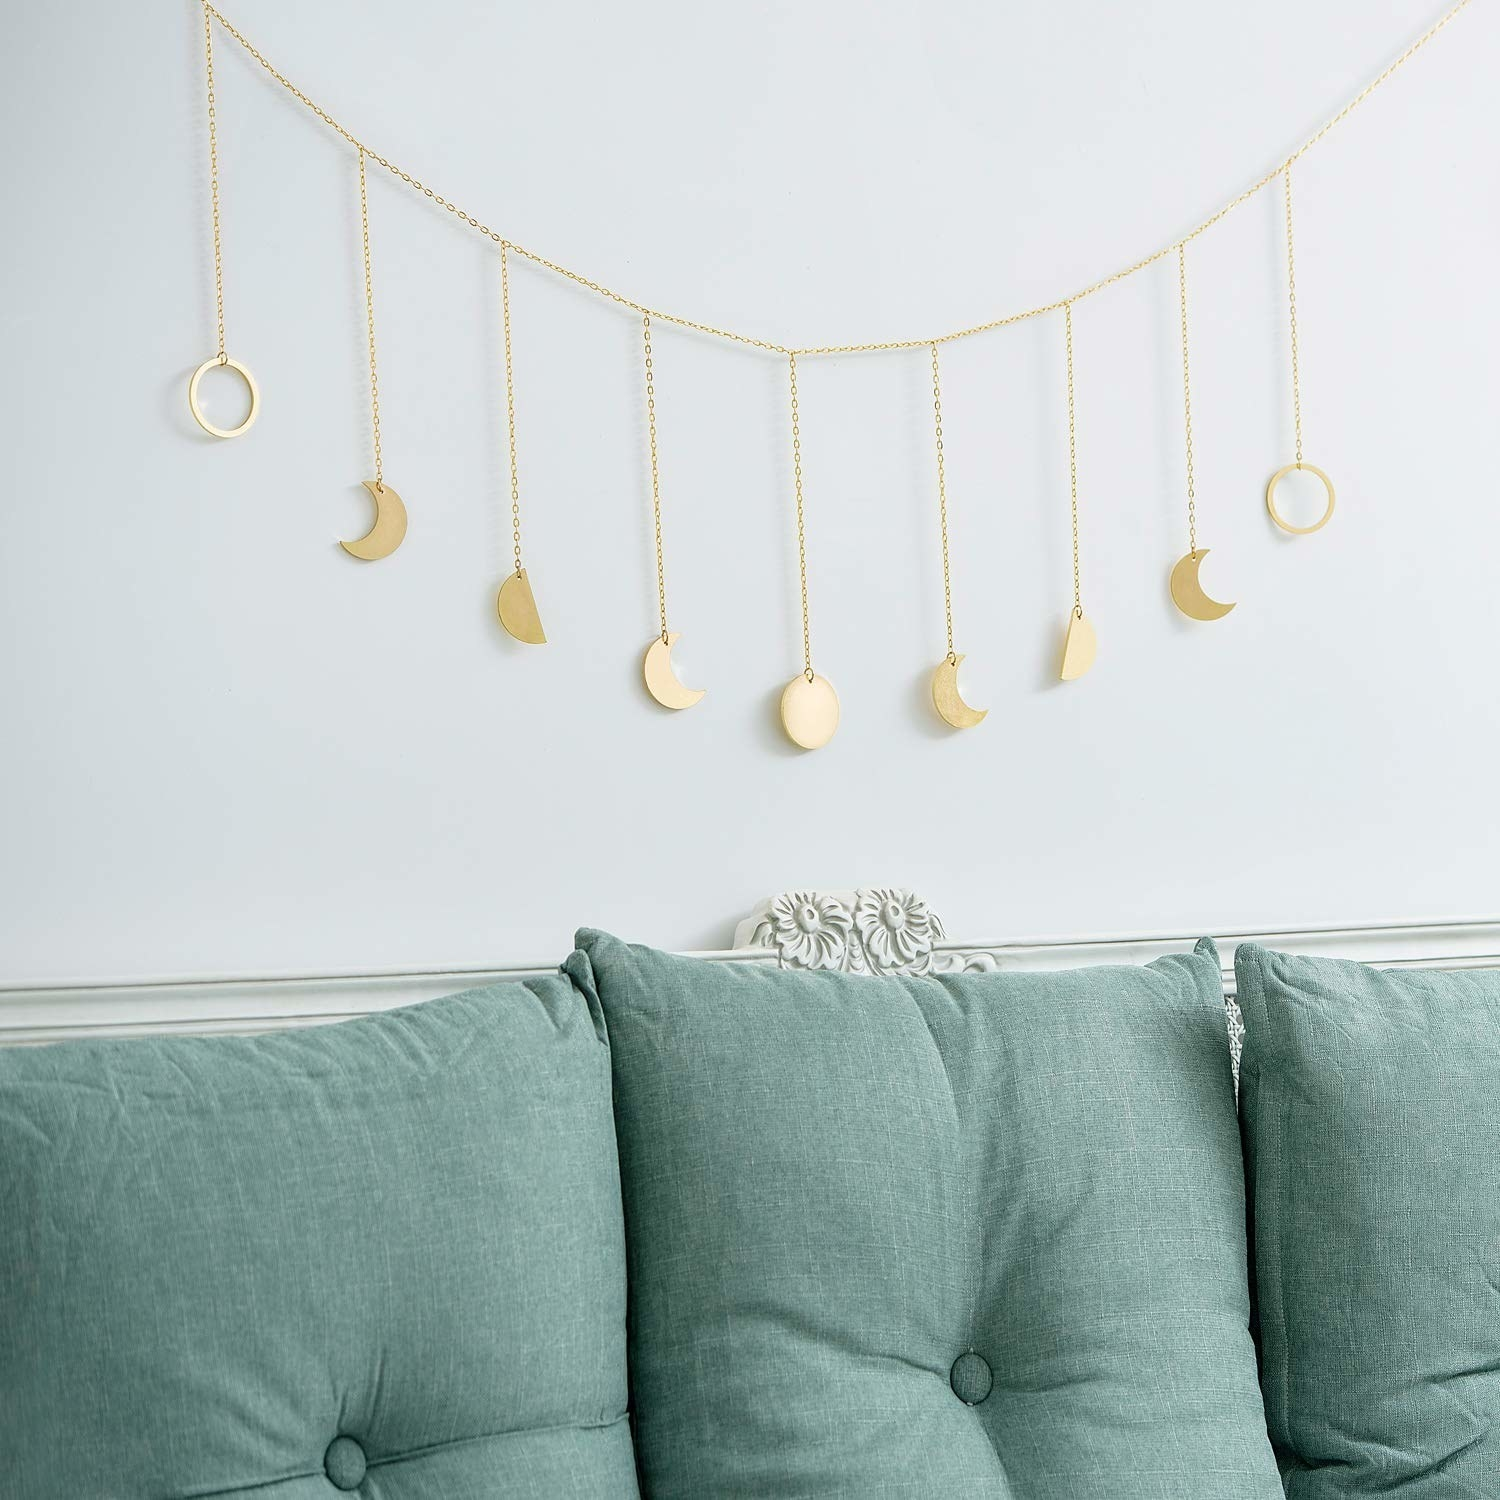 Gold garland with full moon phase charms